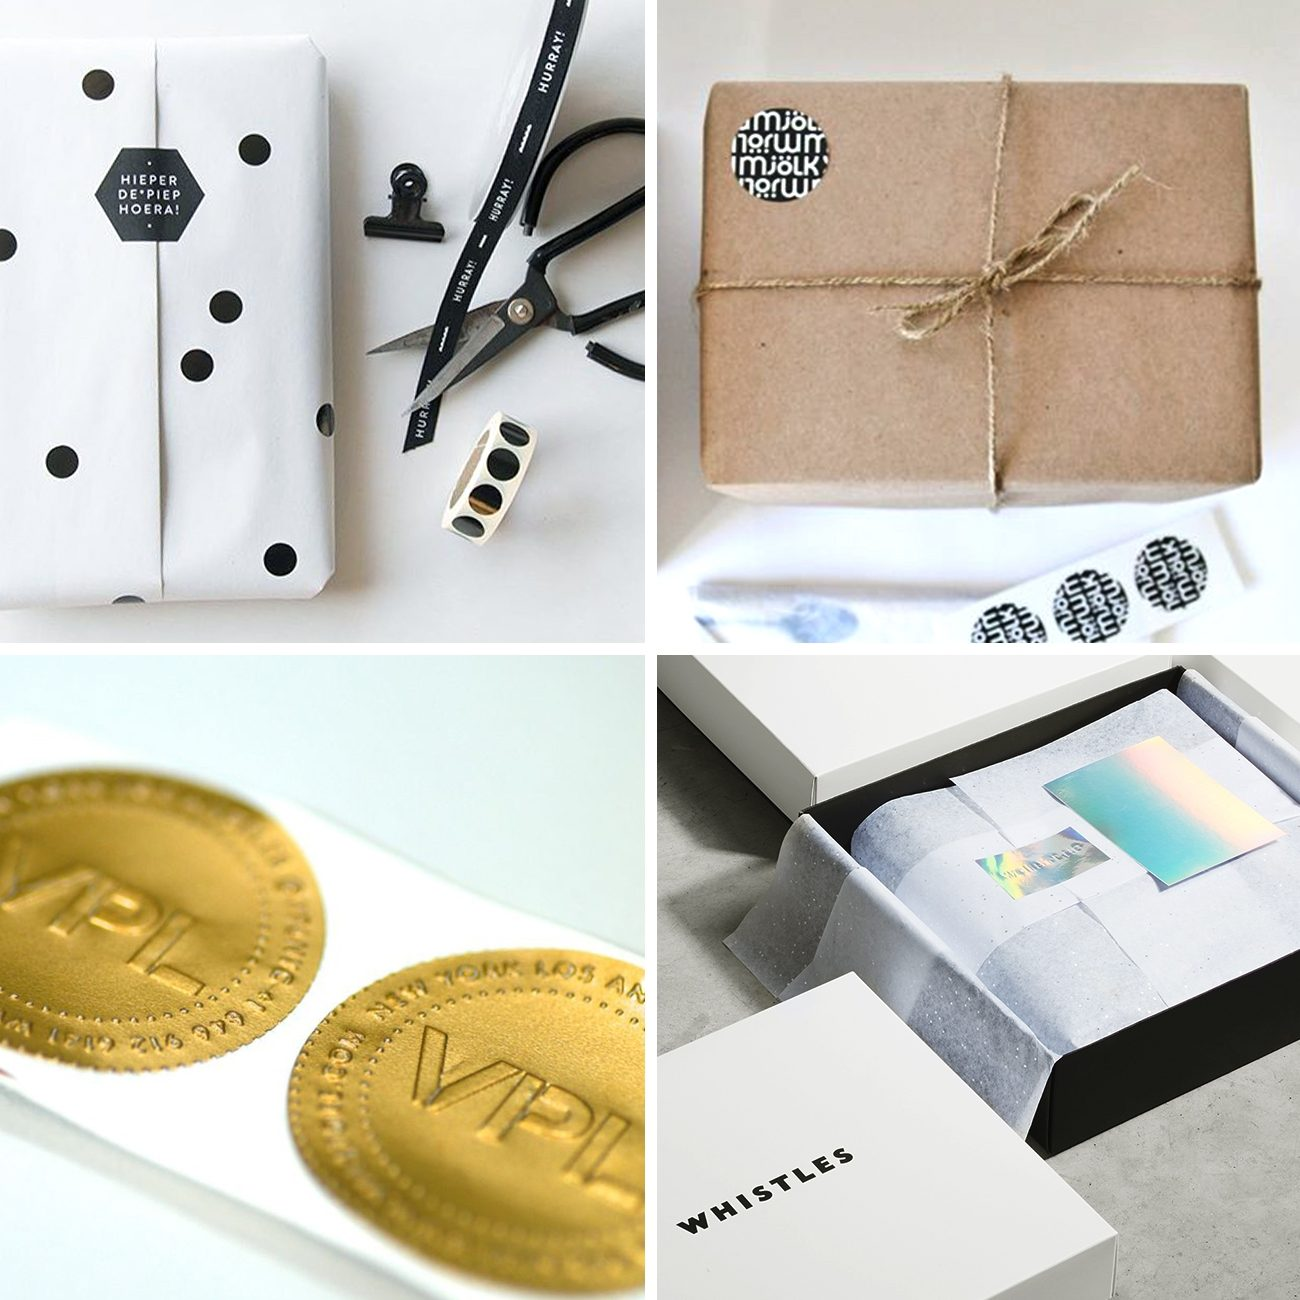 Photos via: Buorx, Kado Design, Salita Bacchi, VPL store, Surface and Form 90 Ideas to Spruce Up Your Holiday Packaging Design